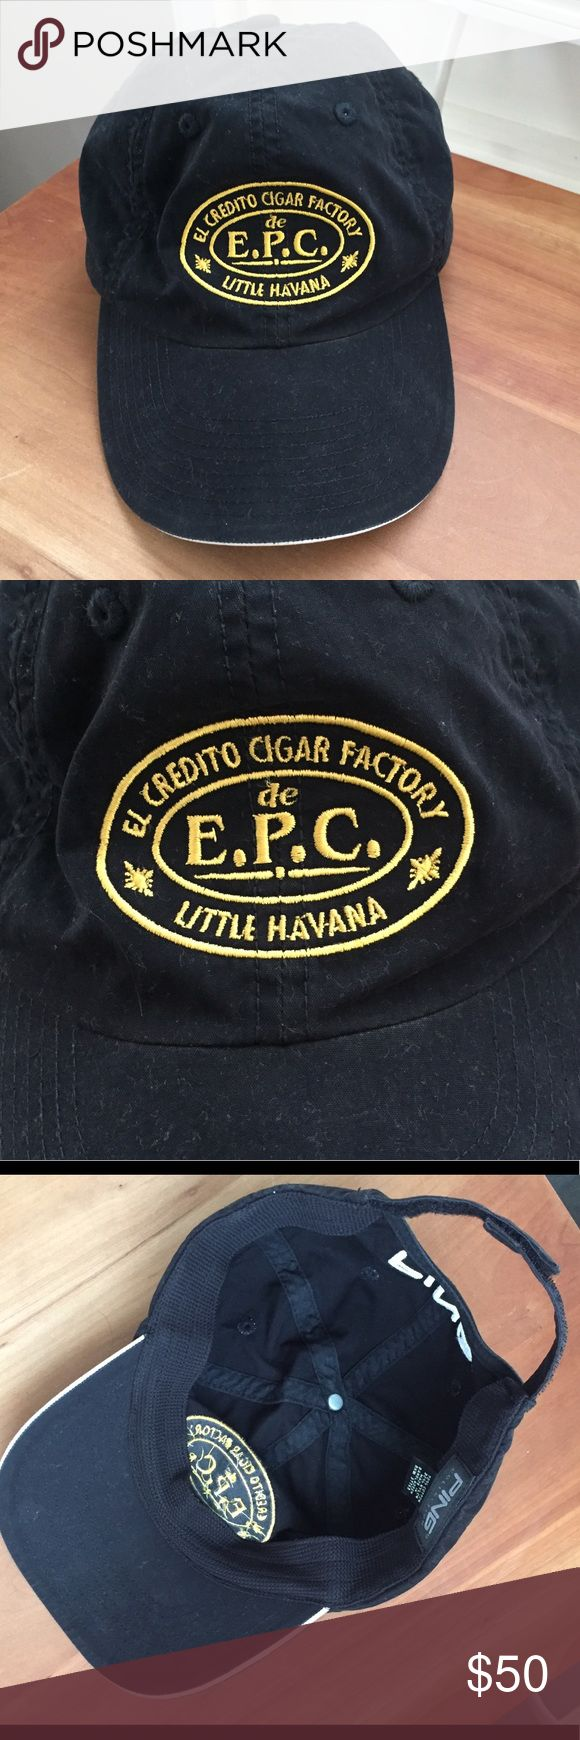 El Credito Cigar Factory golf hat by PING, NWOT! El Credito Cigar Factory golf hat by PING, NWOT!! Rare and impossible to find for sale anywhere.  Super cool hat with famous cigar shop logo in golden yellow on front and PING logo in white on back.  PING is known for making high quality golf apparel.  Hat is fully adjustable with a Velcro closure in back.  Great material, 70% cotton, 30% Rayon.  One size fits all. PING Accessories Hats